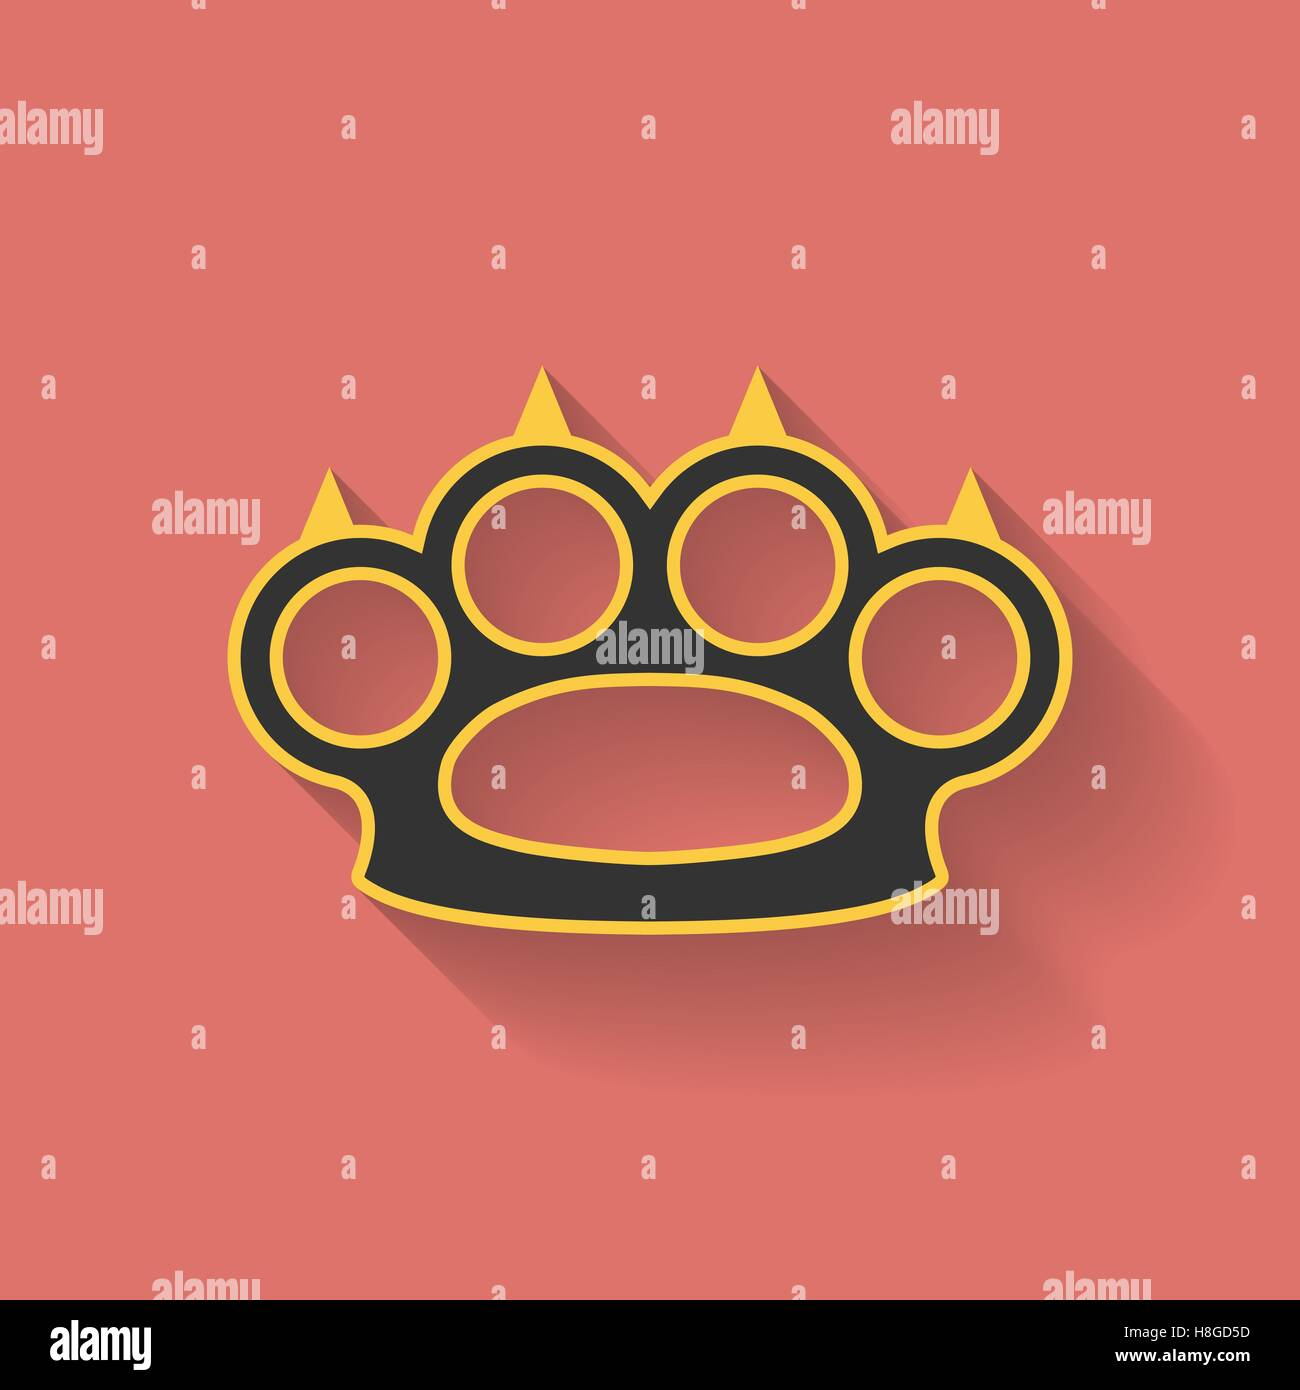 Icon of brass knuckles or knuckle duster. Flat style - Stock Vector